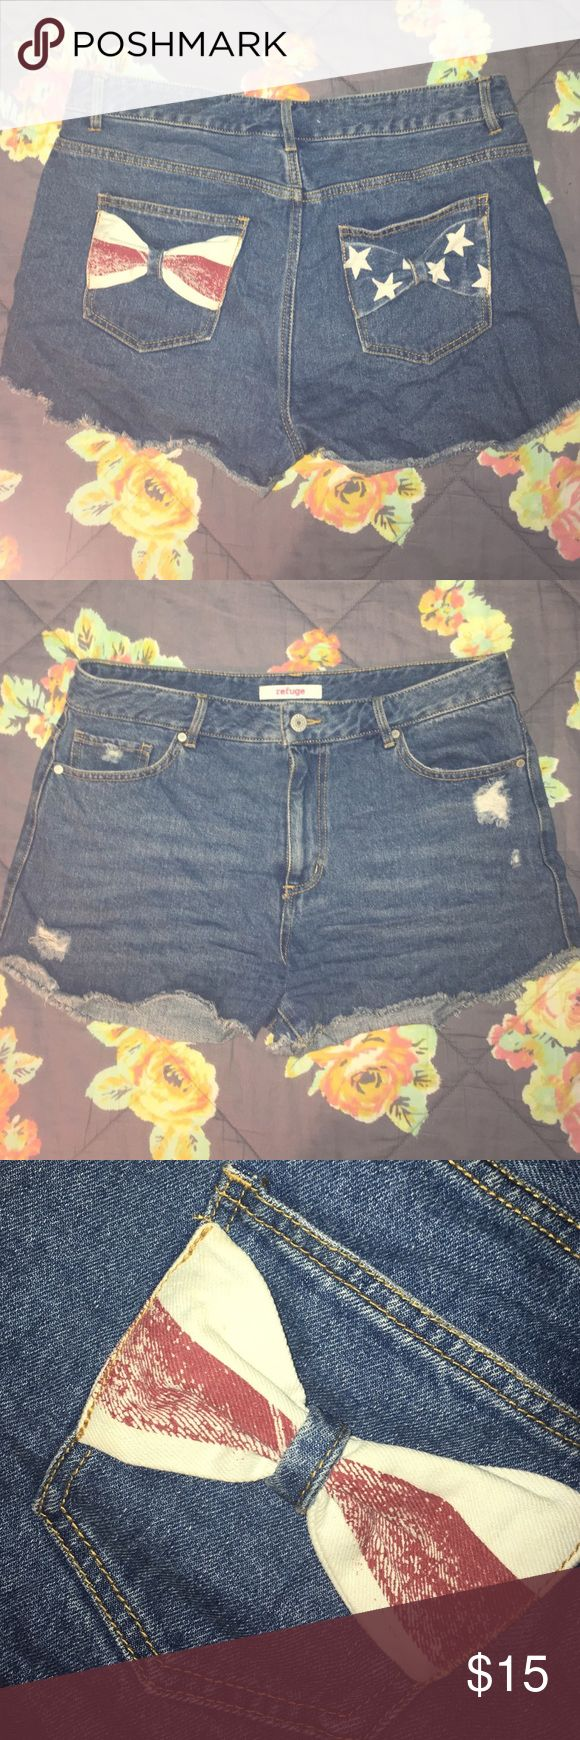 American Flag Bow Jean Shorts Red white and blue American flag bow denim jean shorts, Worn only once, perfect condition, Refuge brand, Size 12 refuge Shorts Jean Shorts